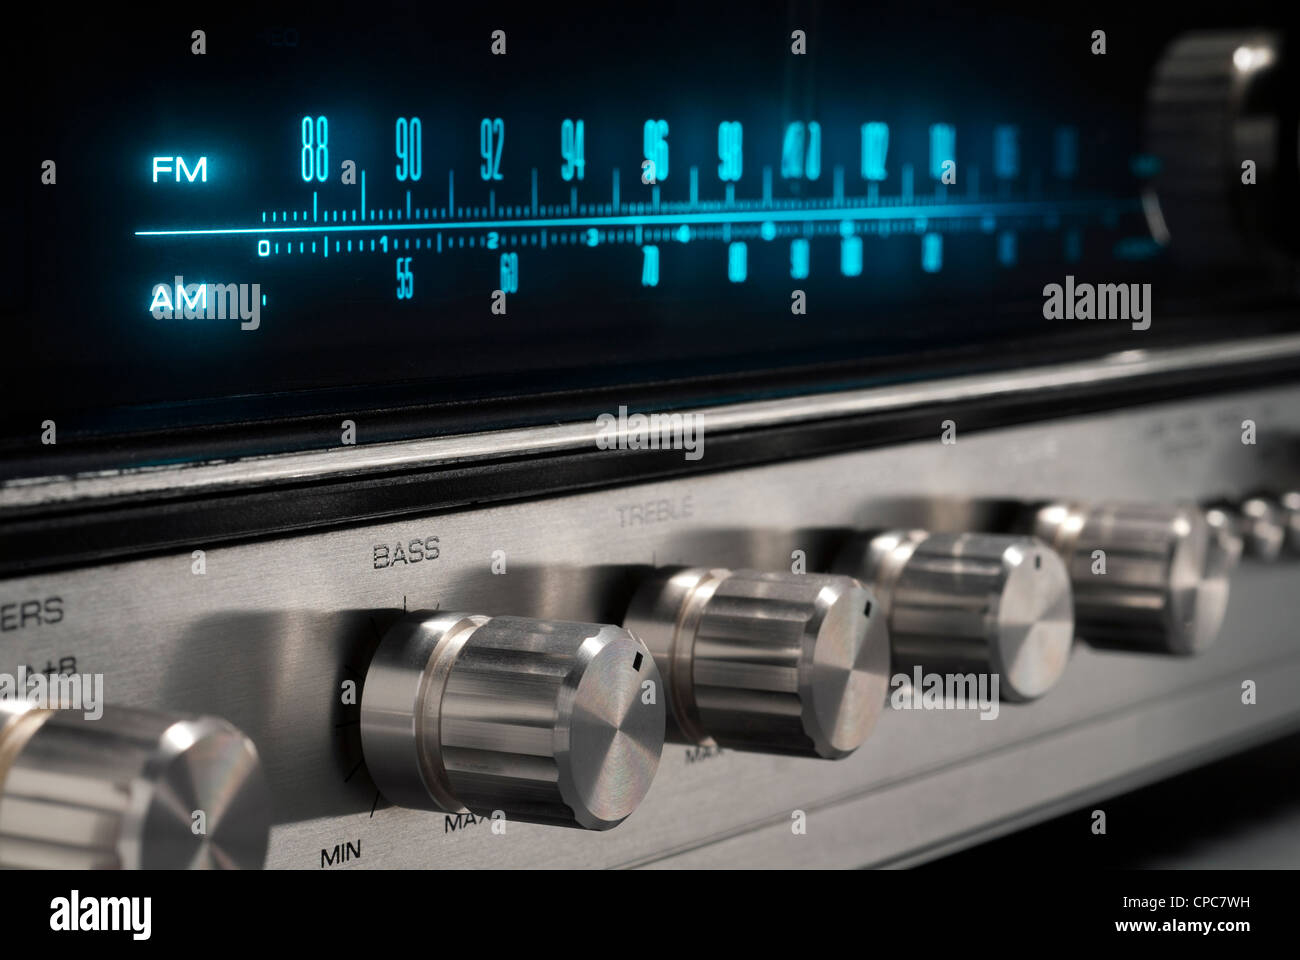 Analog display of an old stereo receiver. - Stock Image